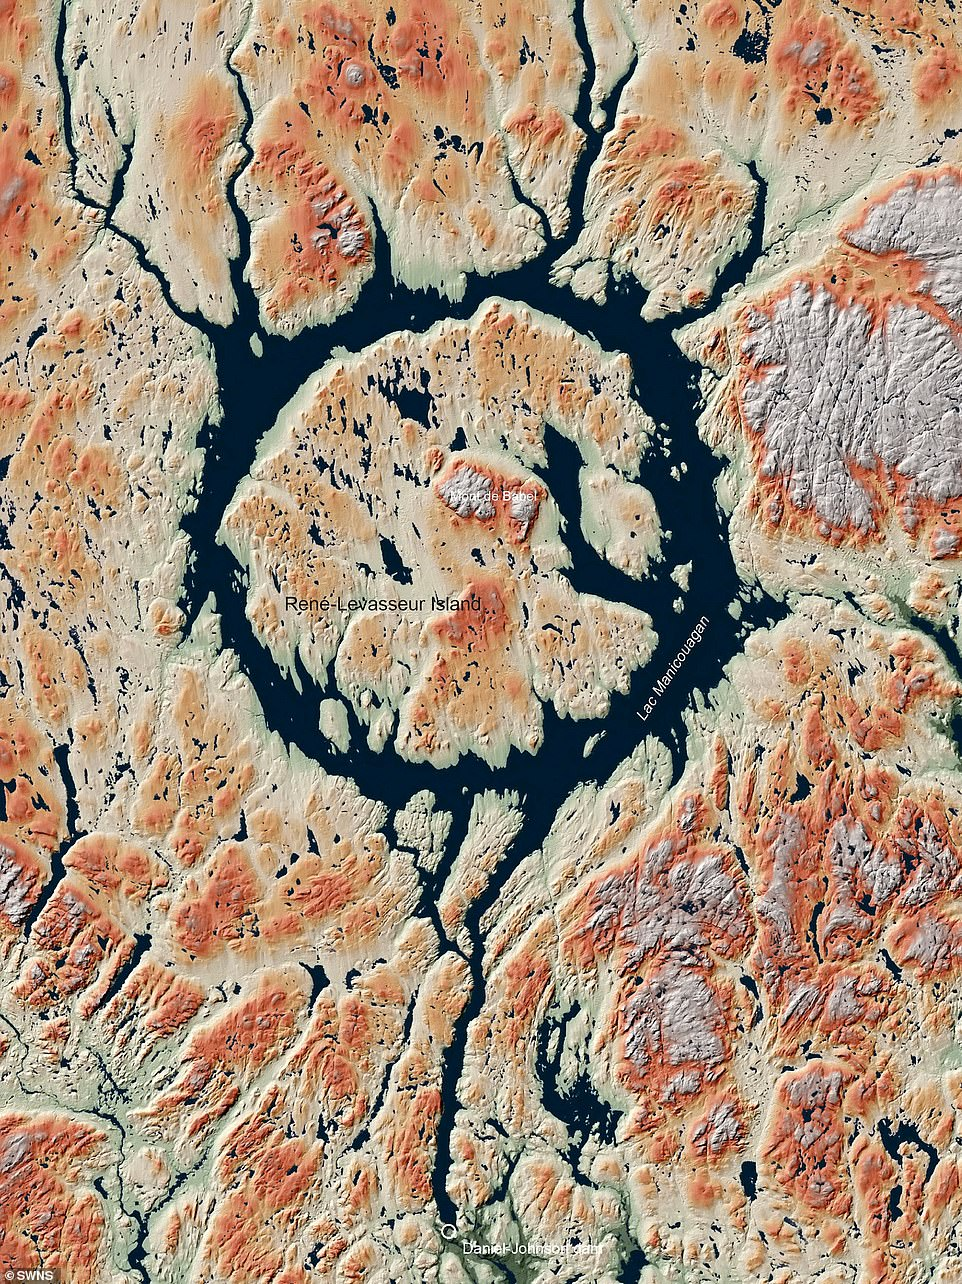 Researchers used a low-orbit radar satellite called TanDEM-X between 2010 and 2016 to measure every known crater on Earth's surface with an altitude accuracy of a meter. Pictured: Manicouagan crater in Quebec, Canada